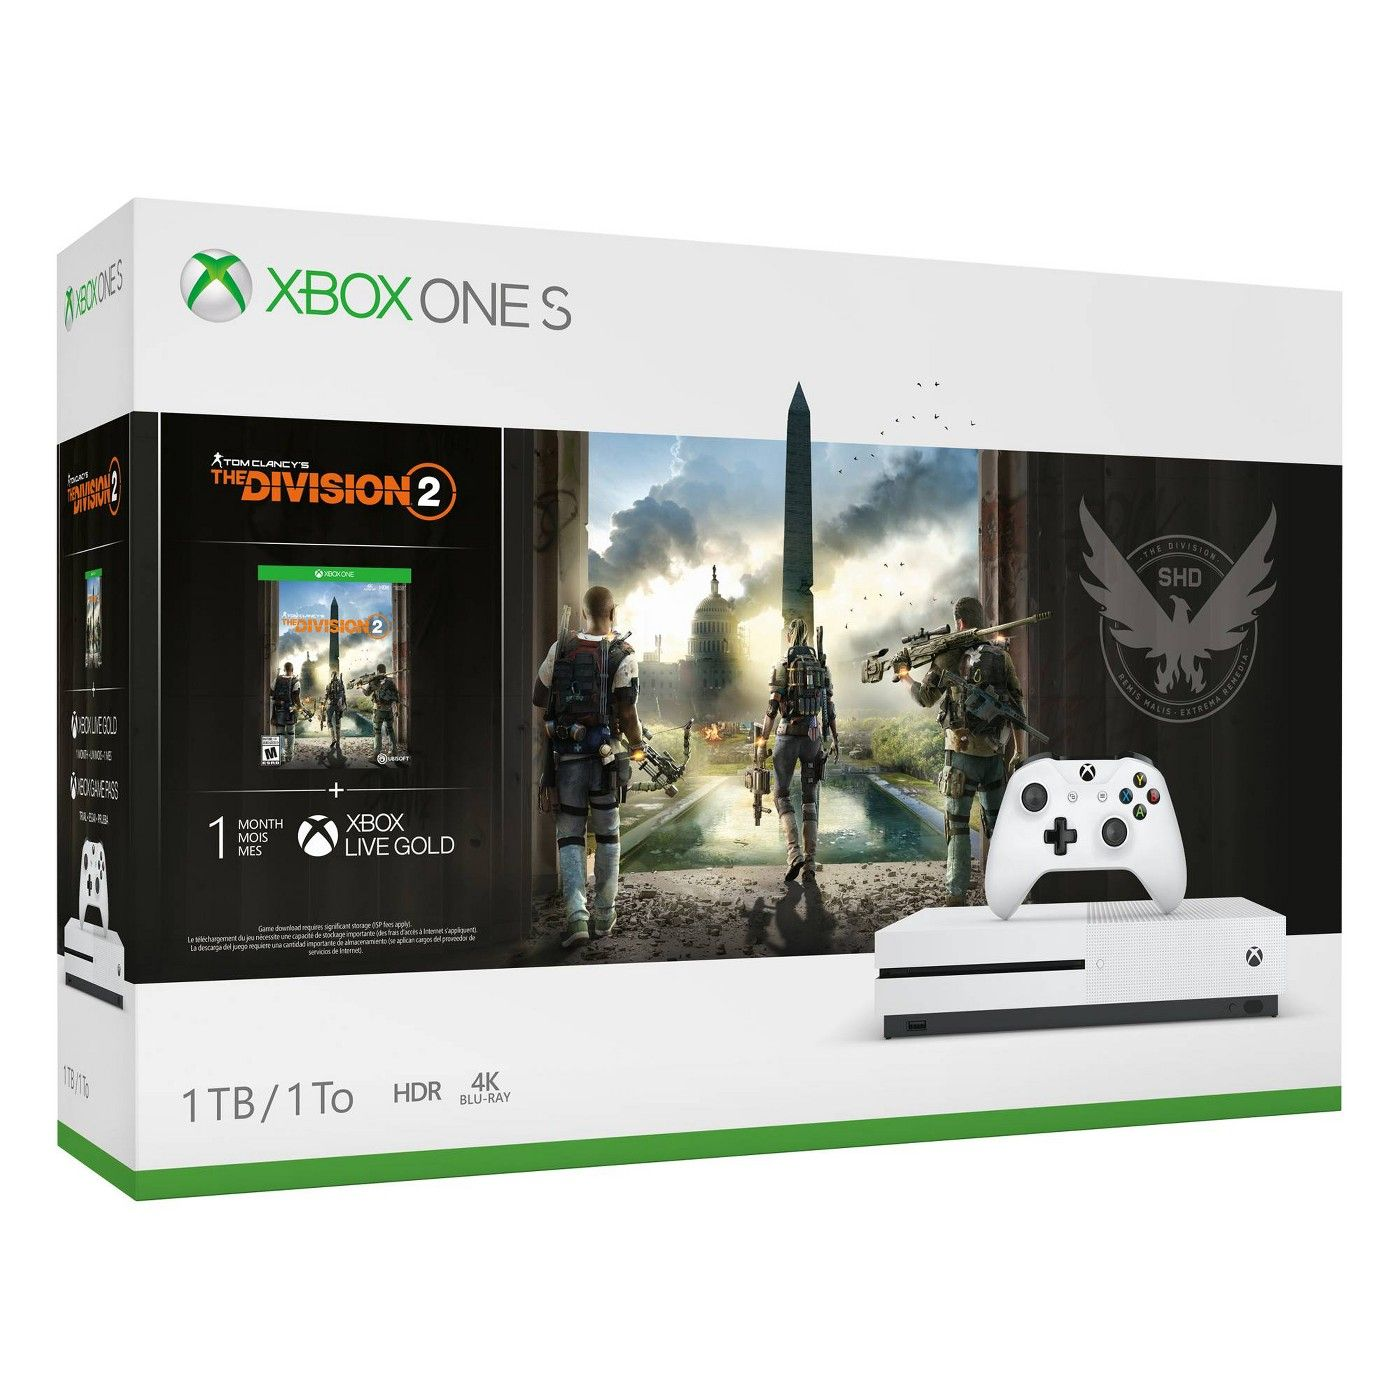 Xbox One S 1tb The Division 2 Bundle Affiliate Tb Ad Xbox